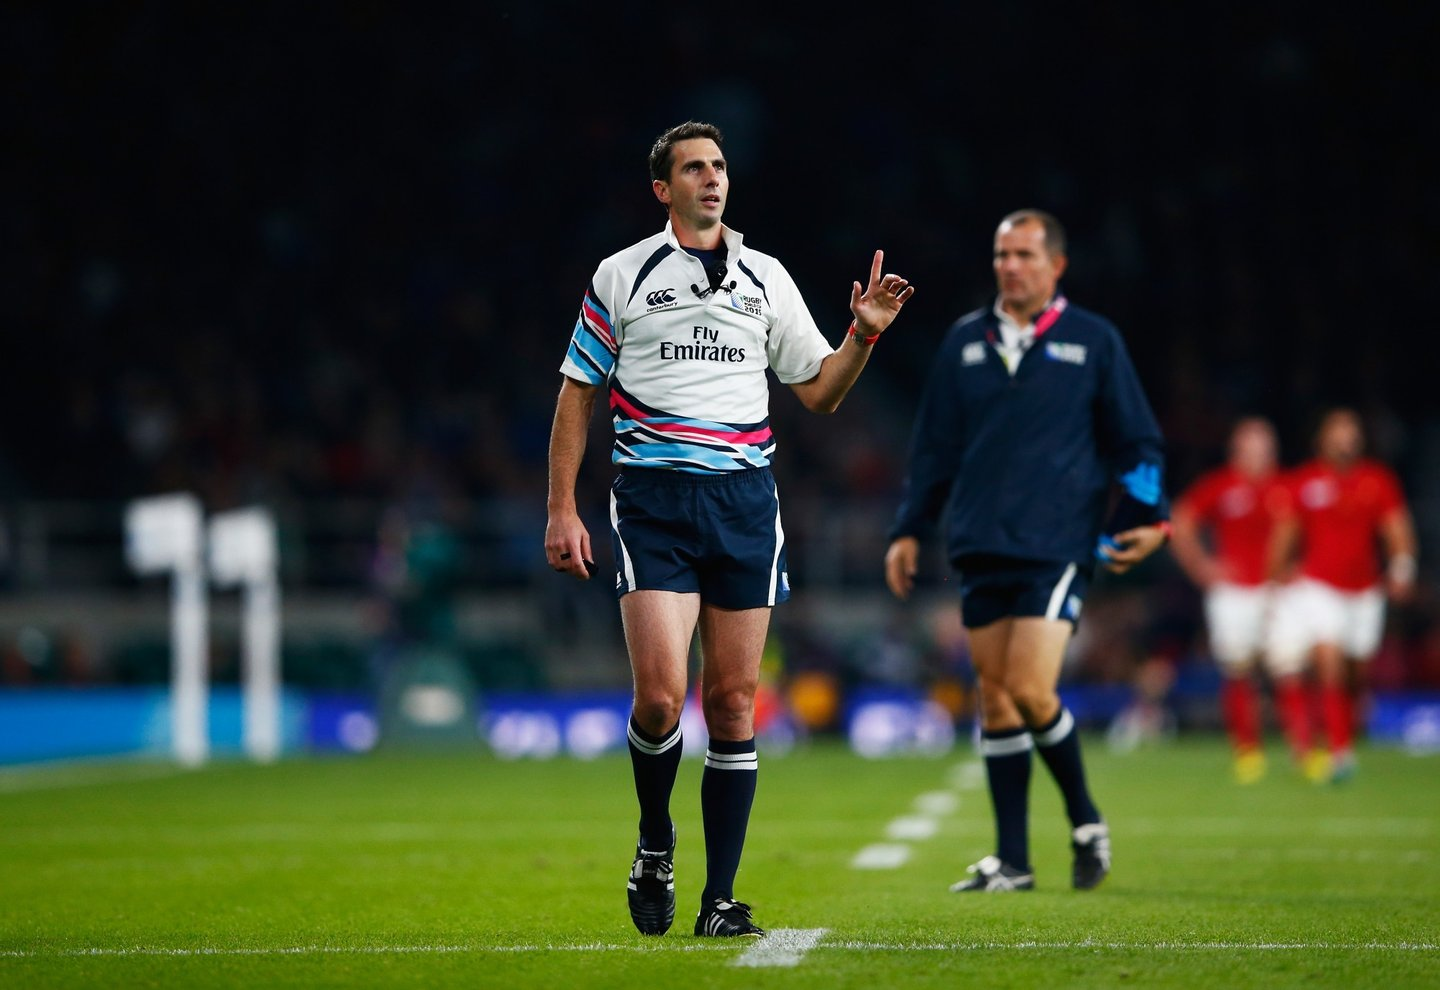 LONDON, ENGLAND - SEPTEMBER 19: Referee Craig Joubert refers a decision to the TMO during the 2015 Rugby World Cup Pool D match between France and Italy at Twickenham Stadium on September 19, 2015 in London, United Kingdom. (Photo by Shaun Botterill/Getty Images)